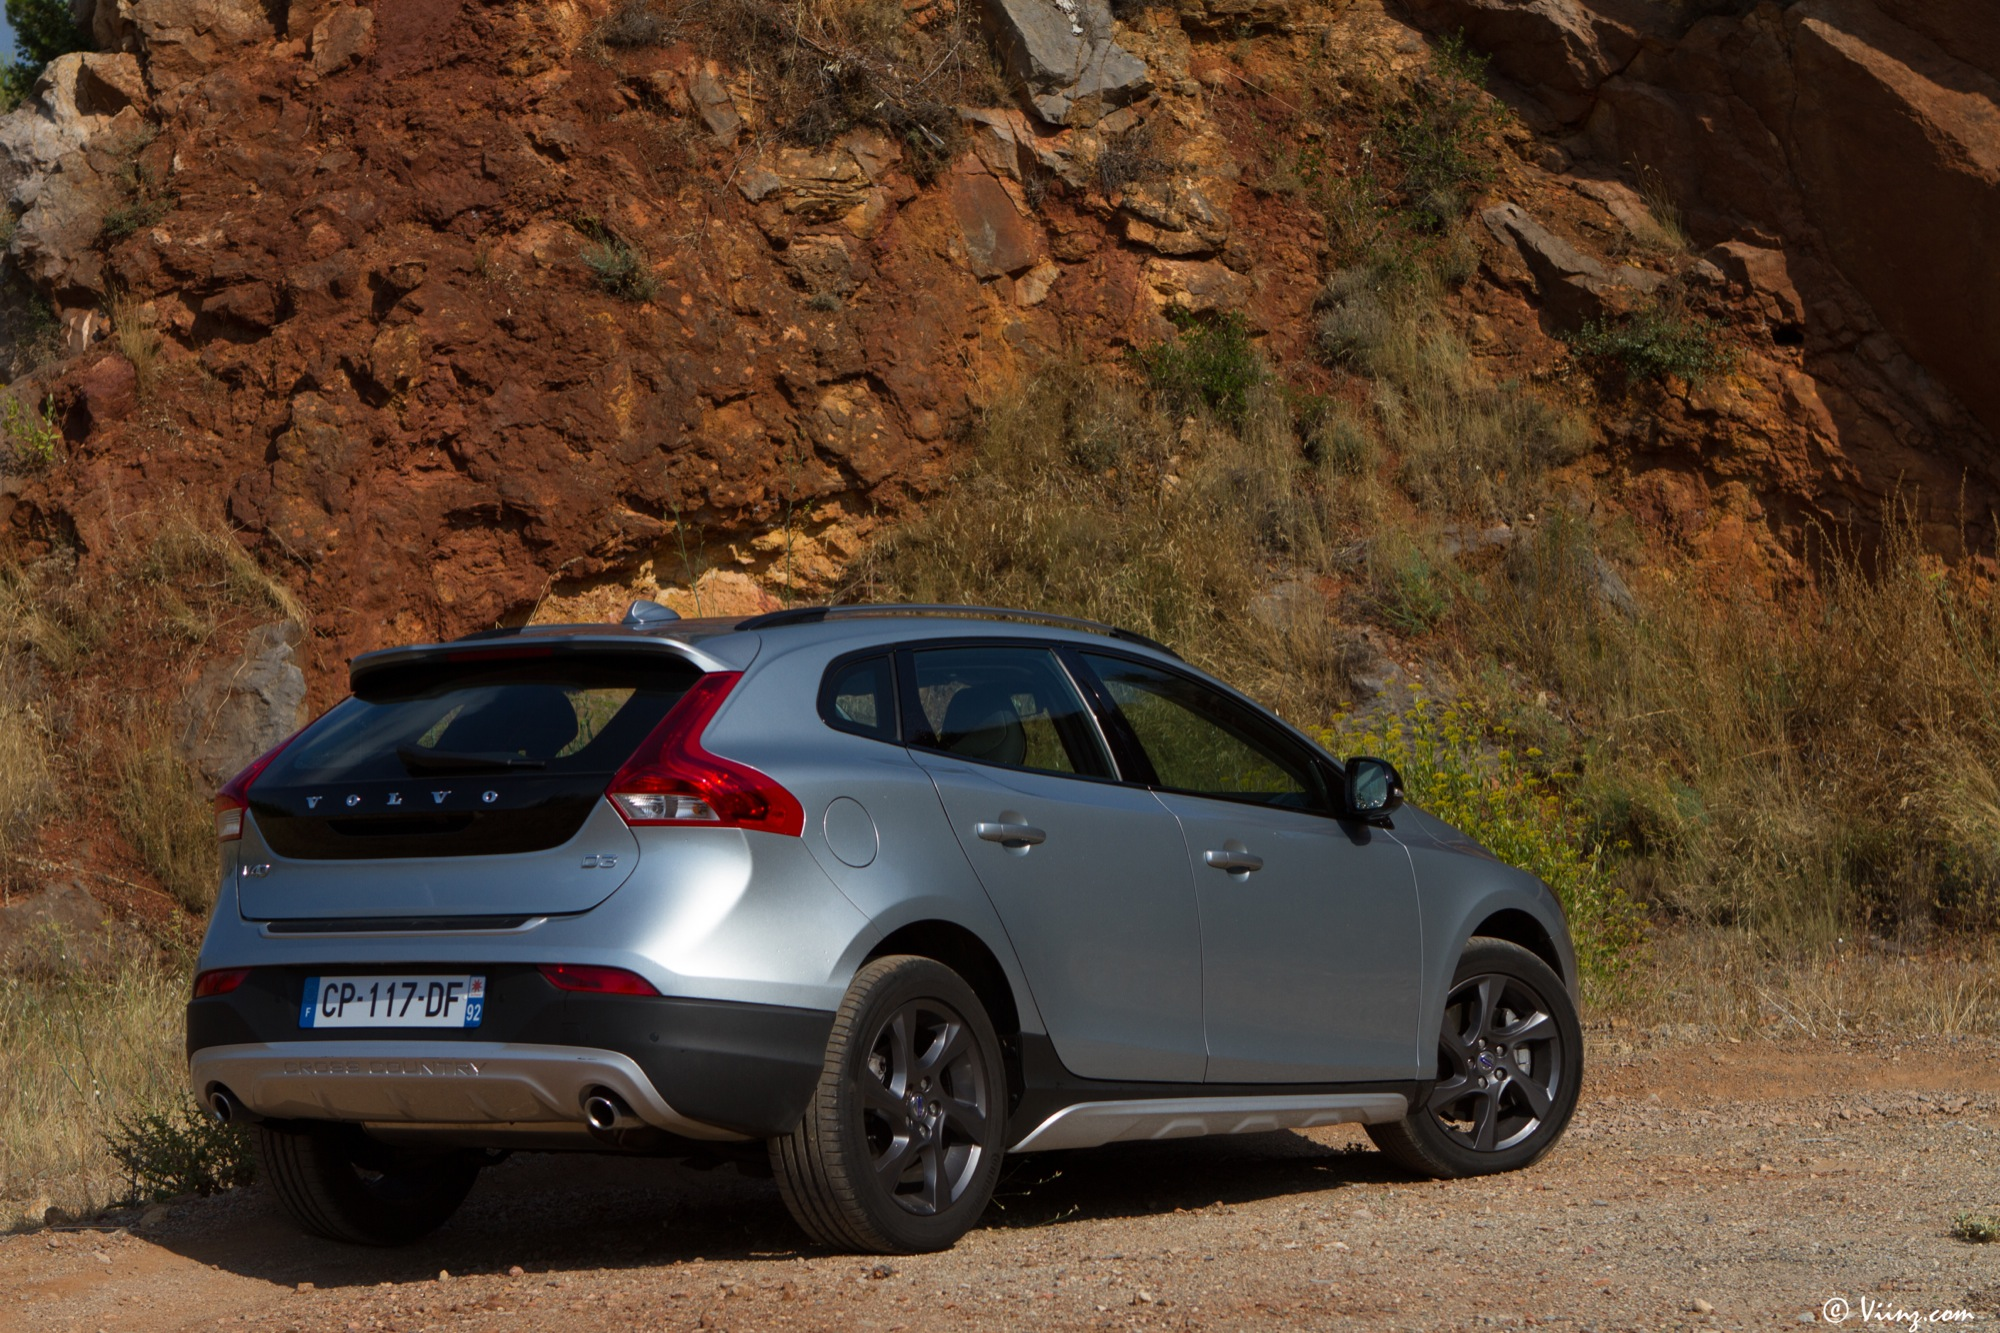 essai volvo v40 cross country d3 le blog de viinz. Black Bedroom Furniture Sets. Home Design Ideas